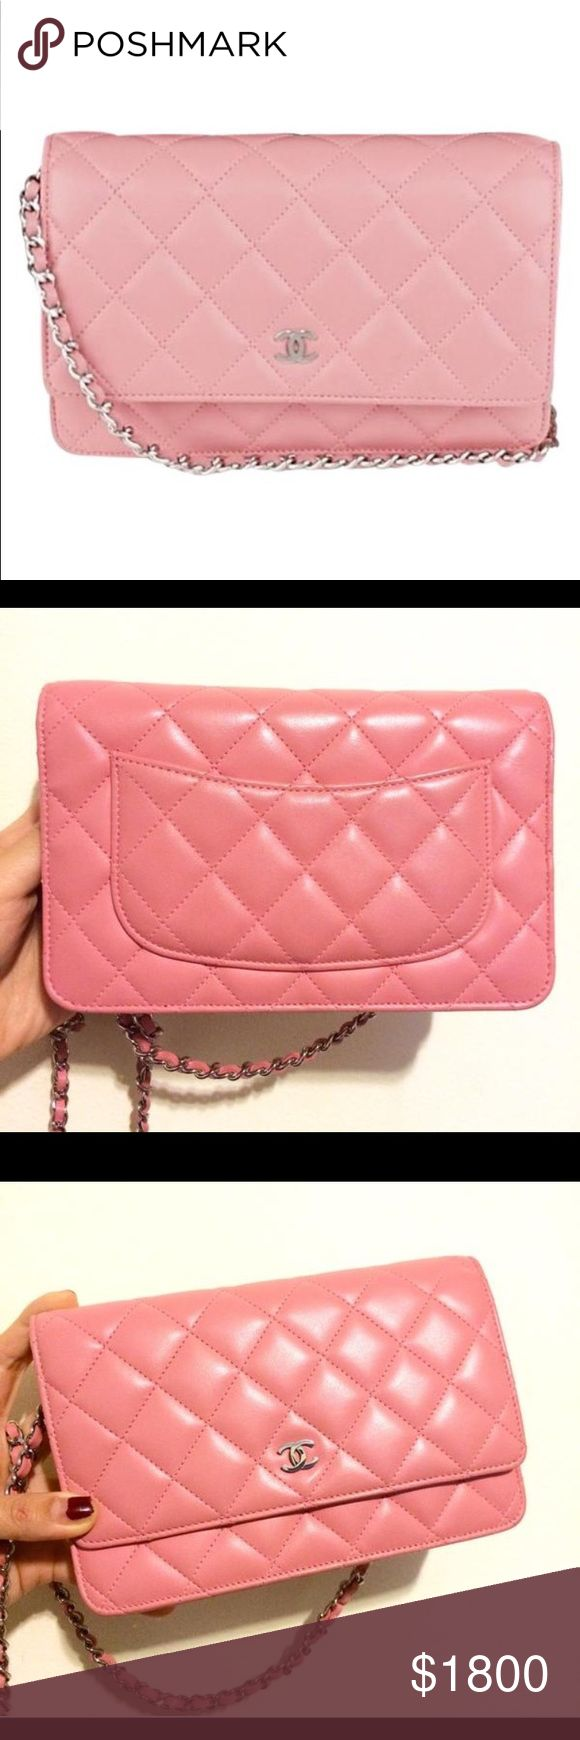 """Chanel Wallet On Chain Quilted Lambskin Bag ❗️❗️ On Sale ❗️❗️ Chanel Wallet On Chain Quilted Lambskin Woc Rose Cross Body Bag Size 7.5""""L x 1.5""""H x 5""""W 100% authentic or your money back guaranteed. Cheaper out of posh due to high fees, cheaper through PayPal, email me at luxurydesigners12 yahoo com CHANEL Bags Crossbody Bags"""